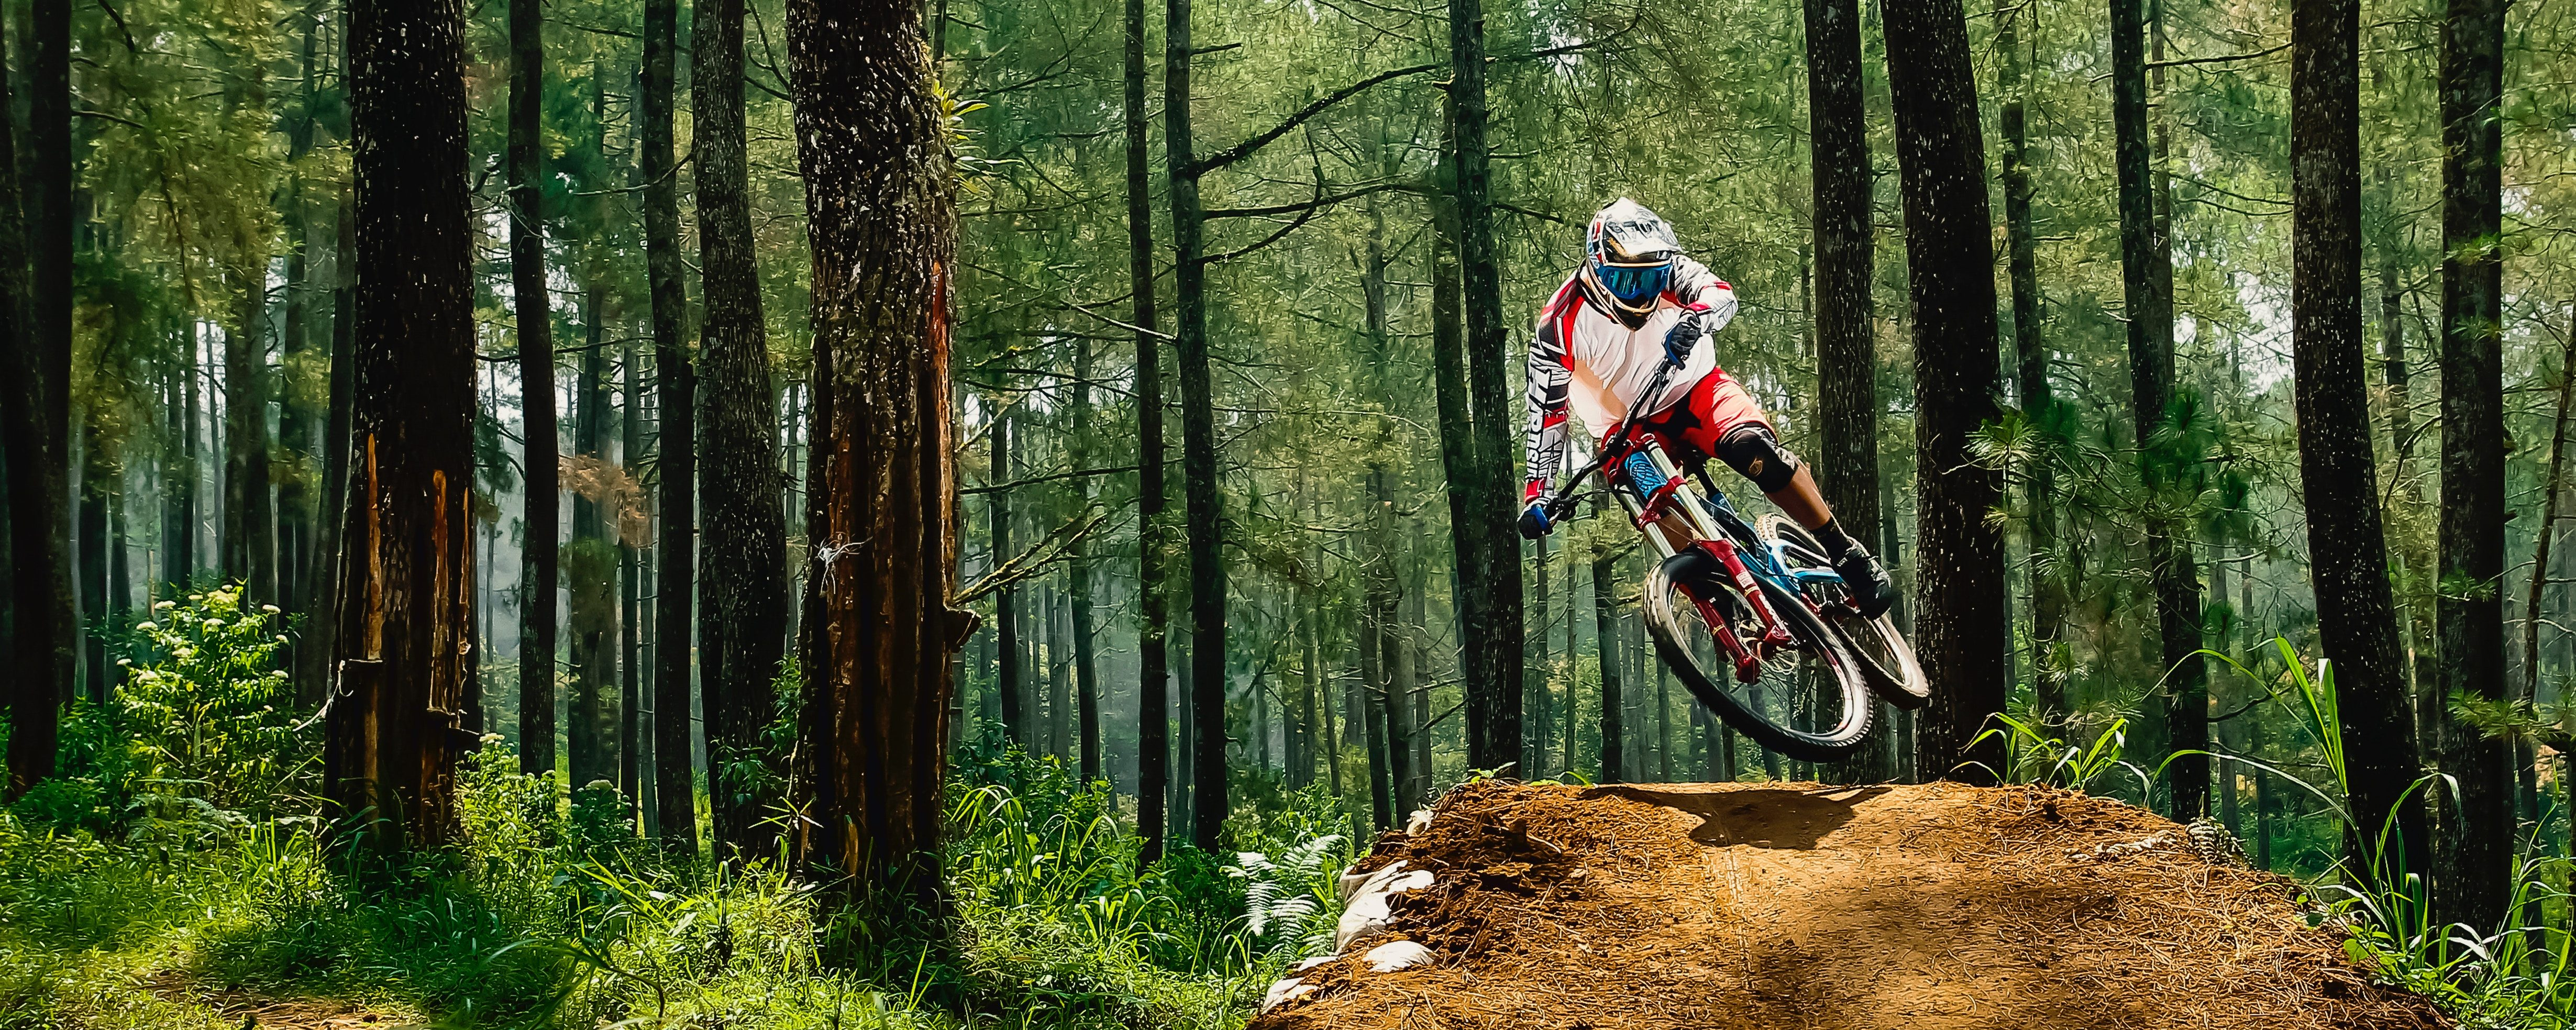 Professional mountain biker performing risky jump in forest